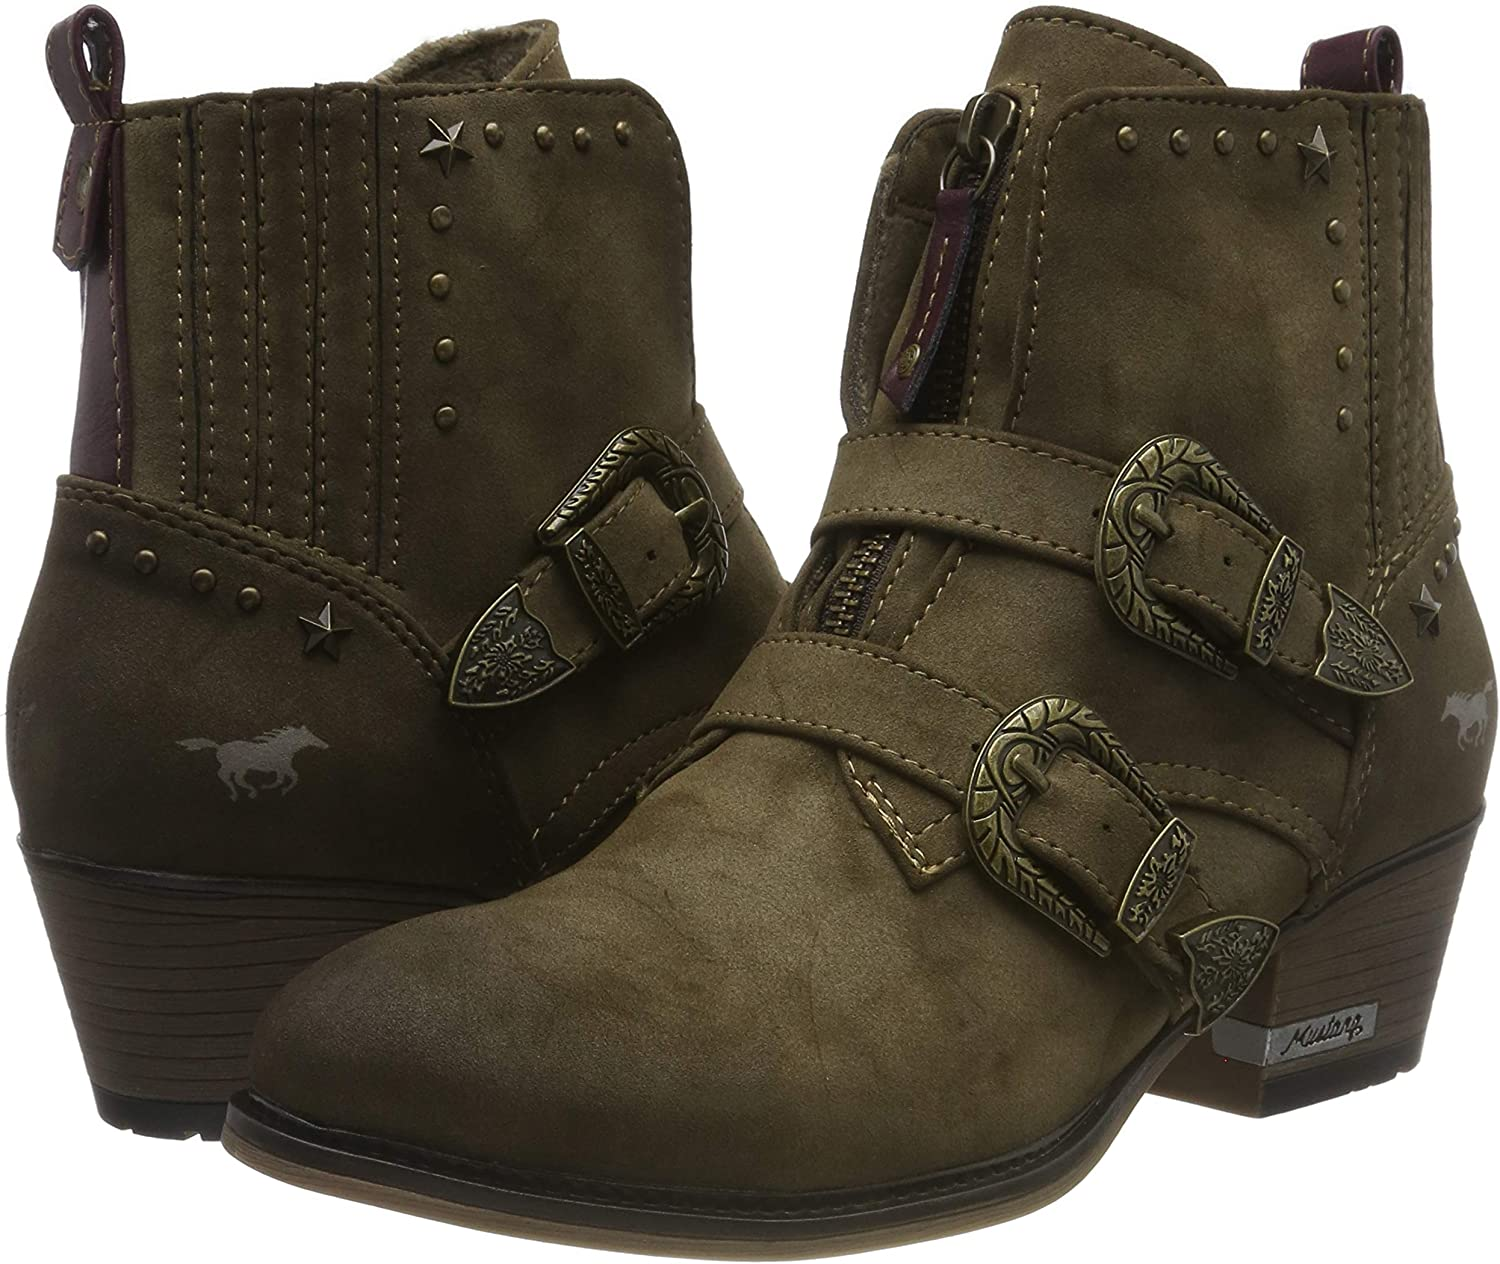 Mustang 1346-501-387 Stivali Western Donna